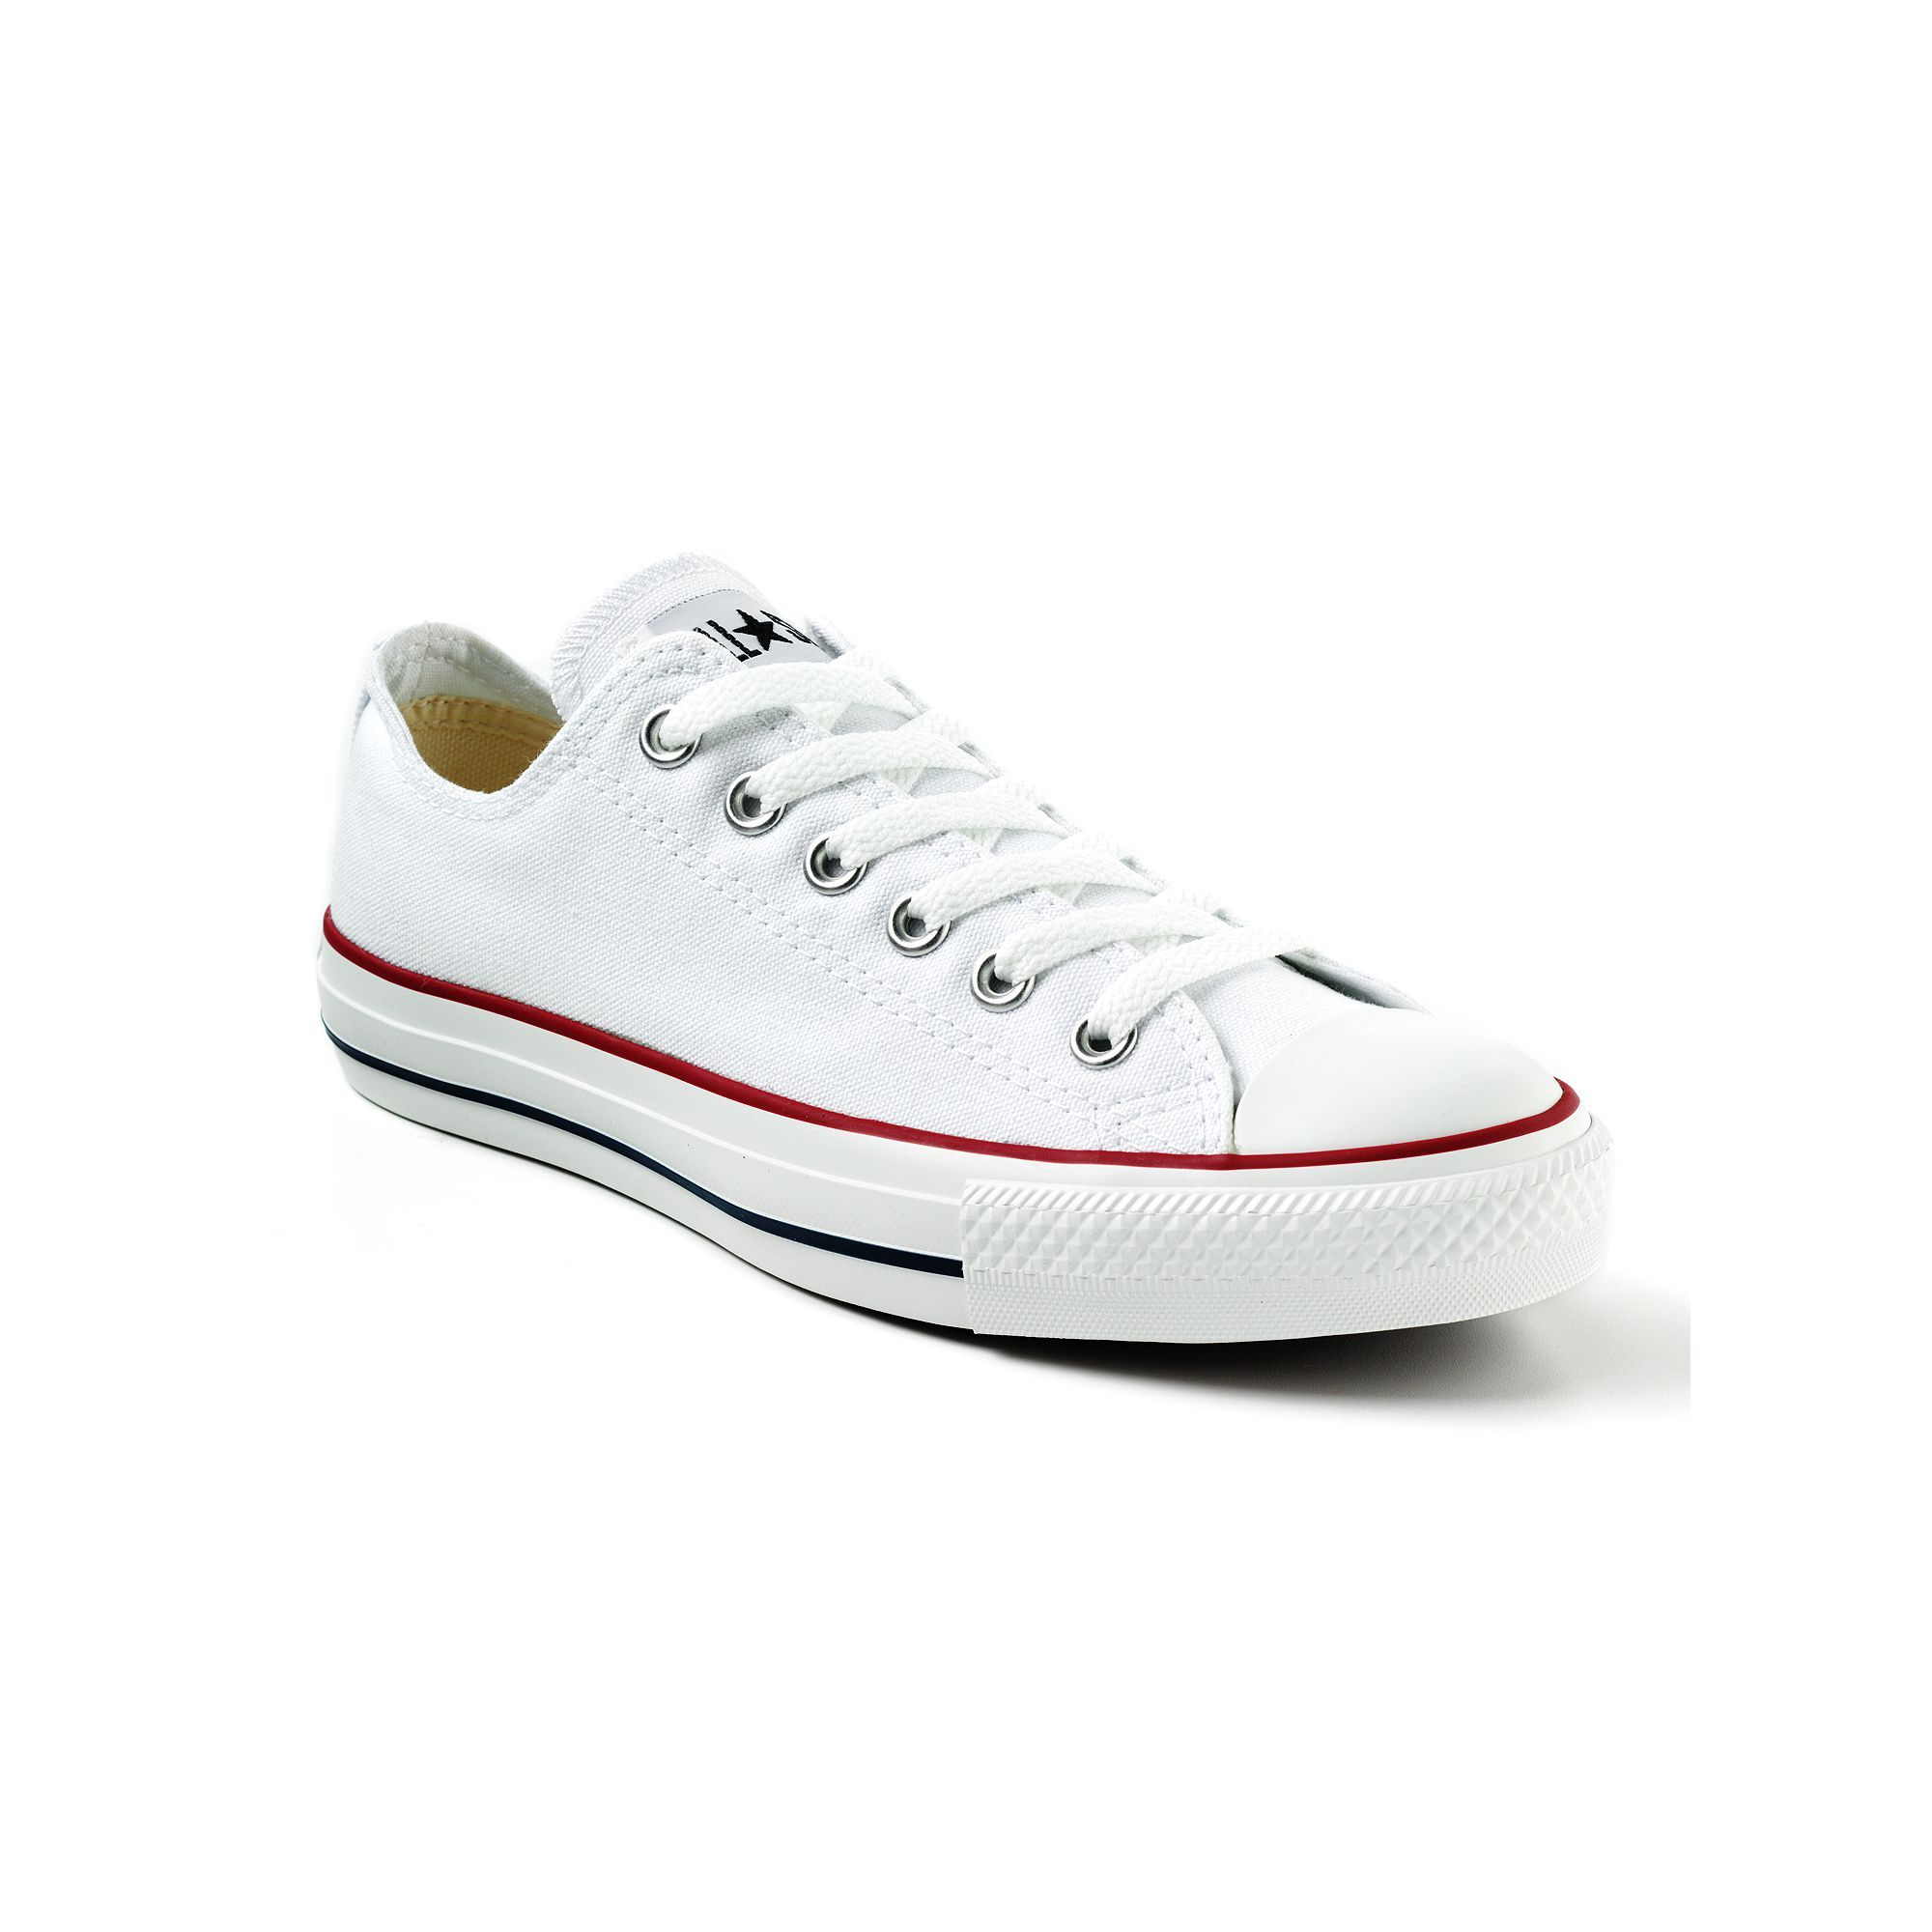 Adult Converse All Star Chuck Taylor Sneakers 28a67d11e790